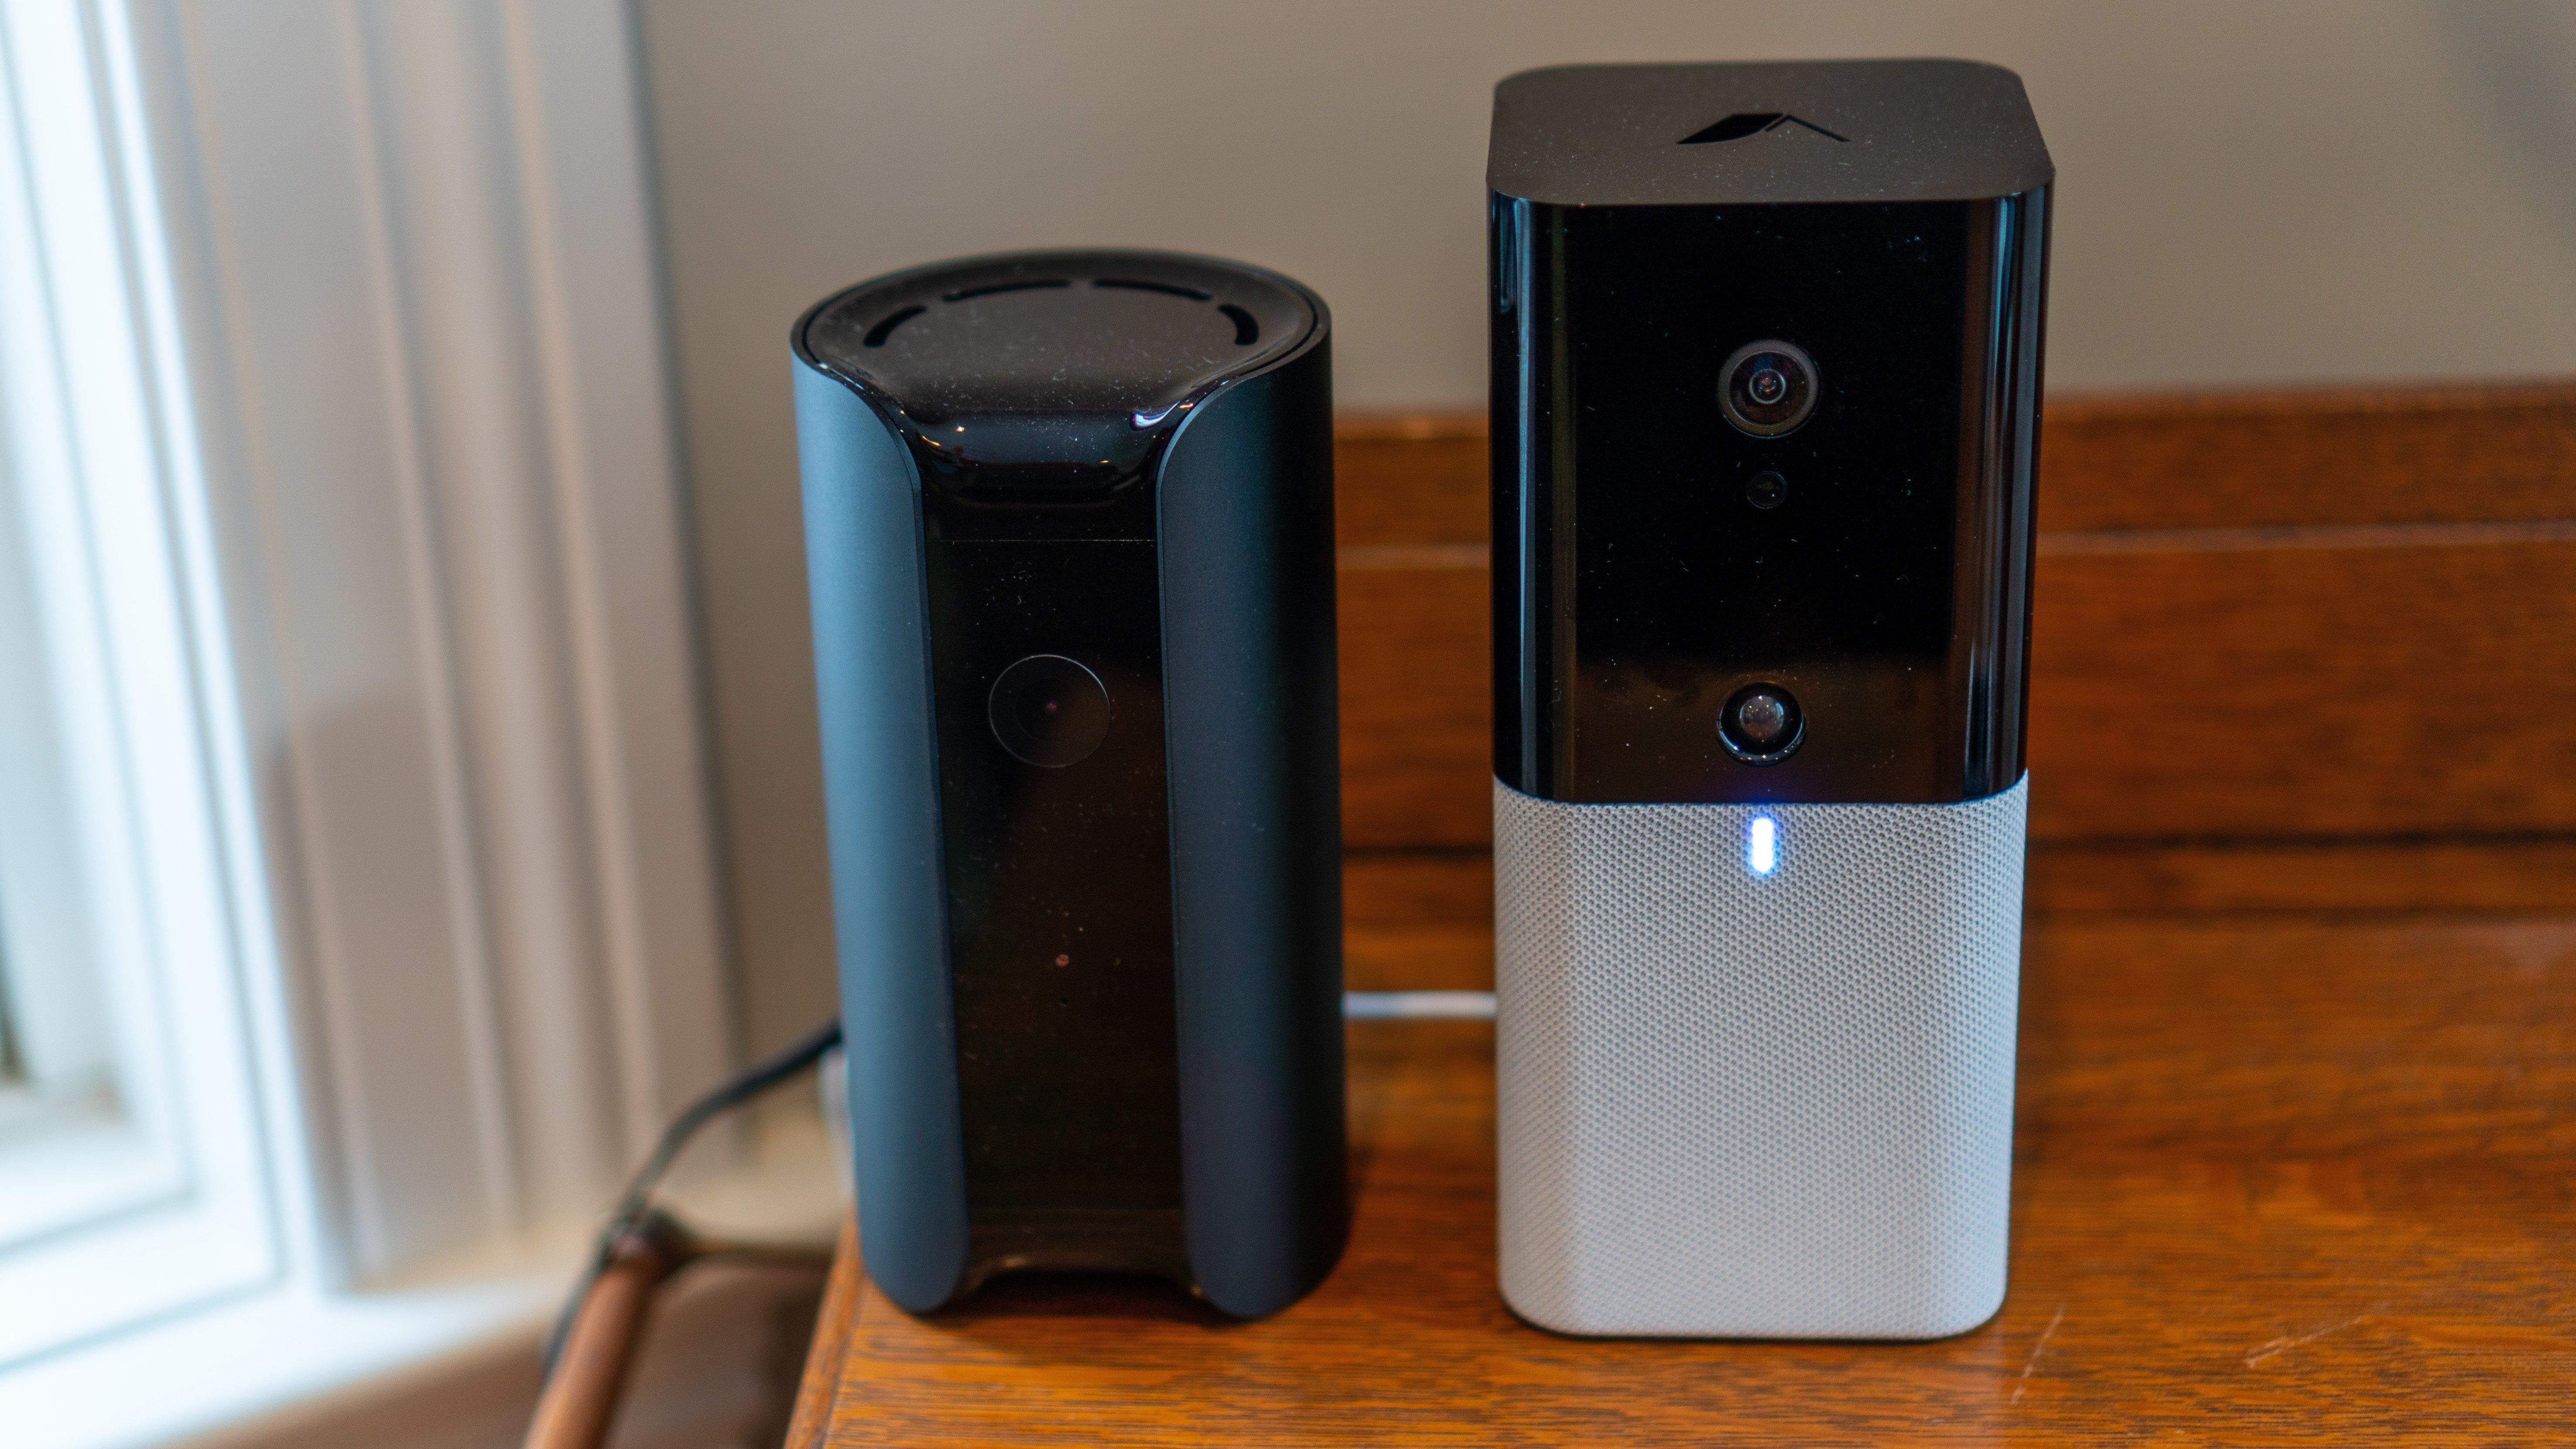 The iota hub is just a little taller than a Canary Pro or View unit.